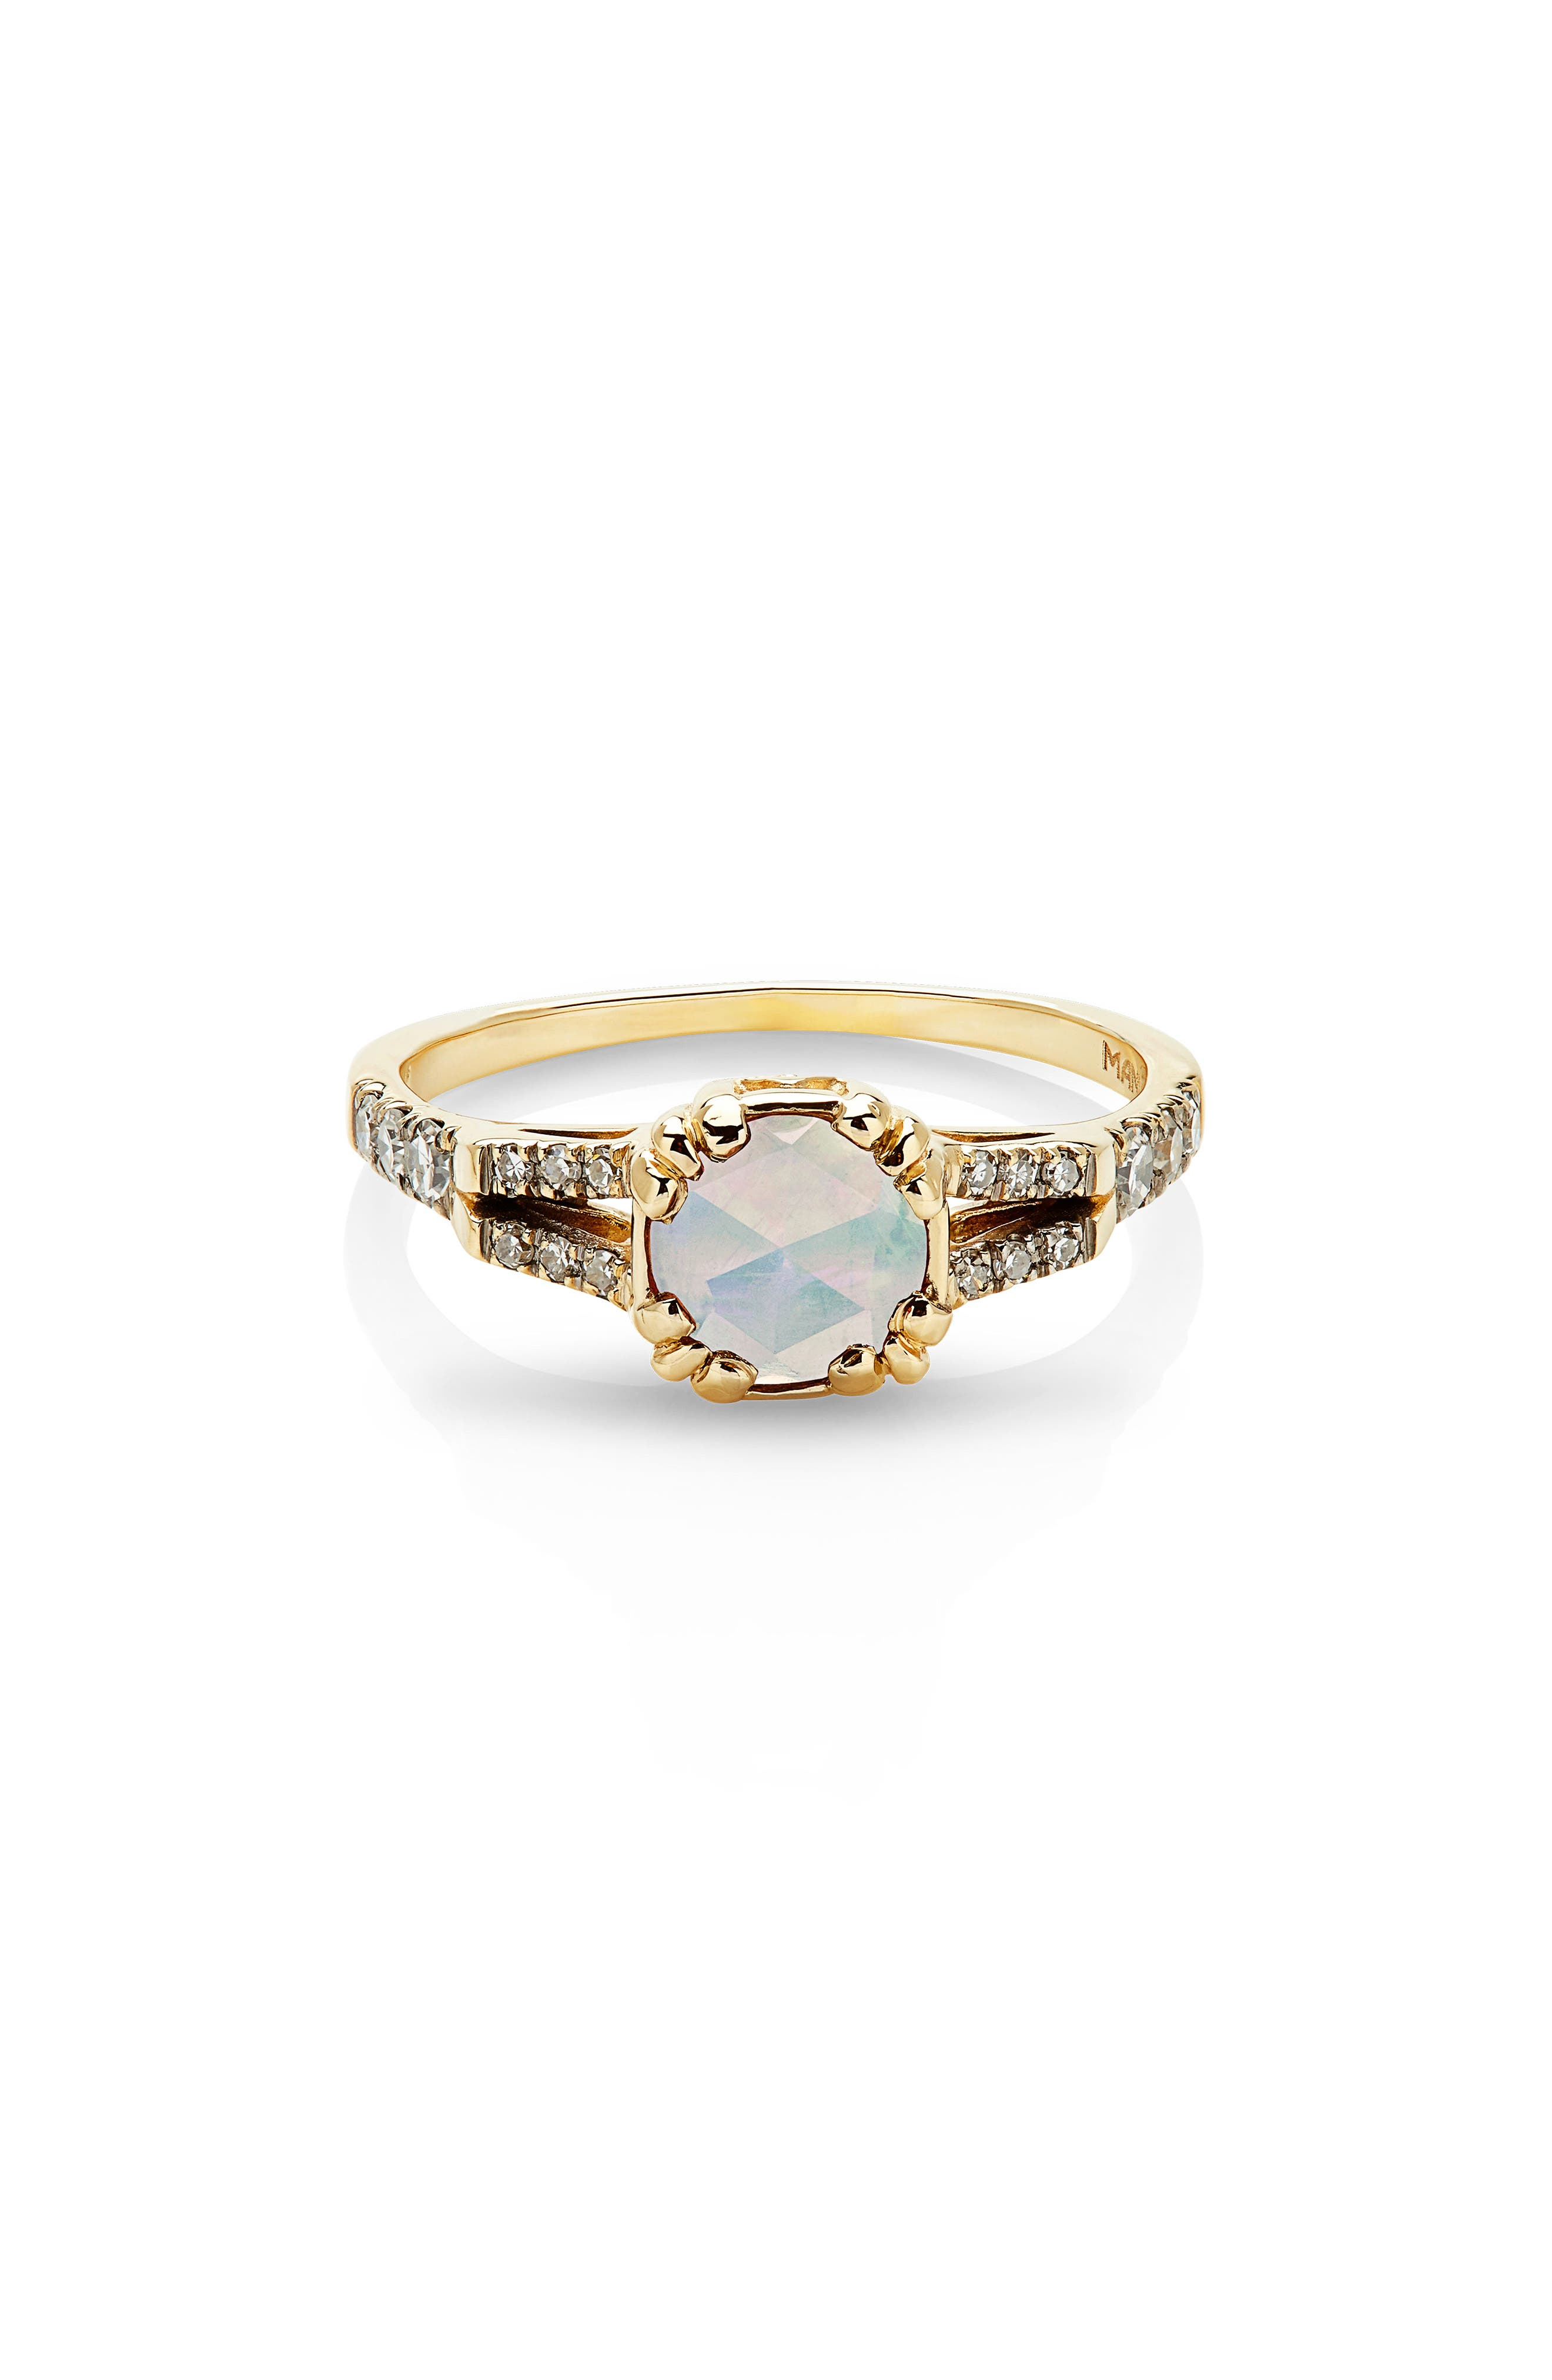 Beloved Solitaire Ring,                         Main,                         color, Yellow Gold